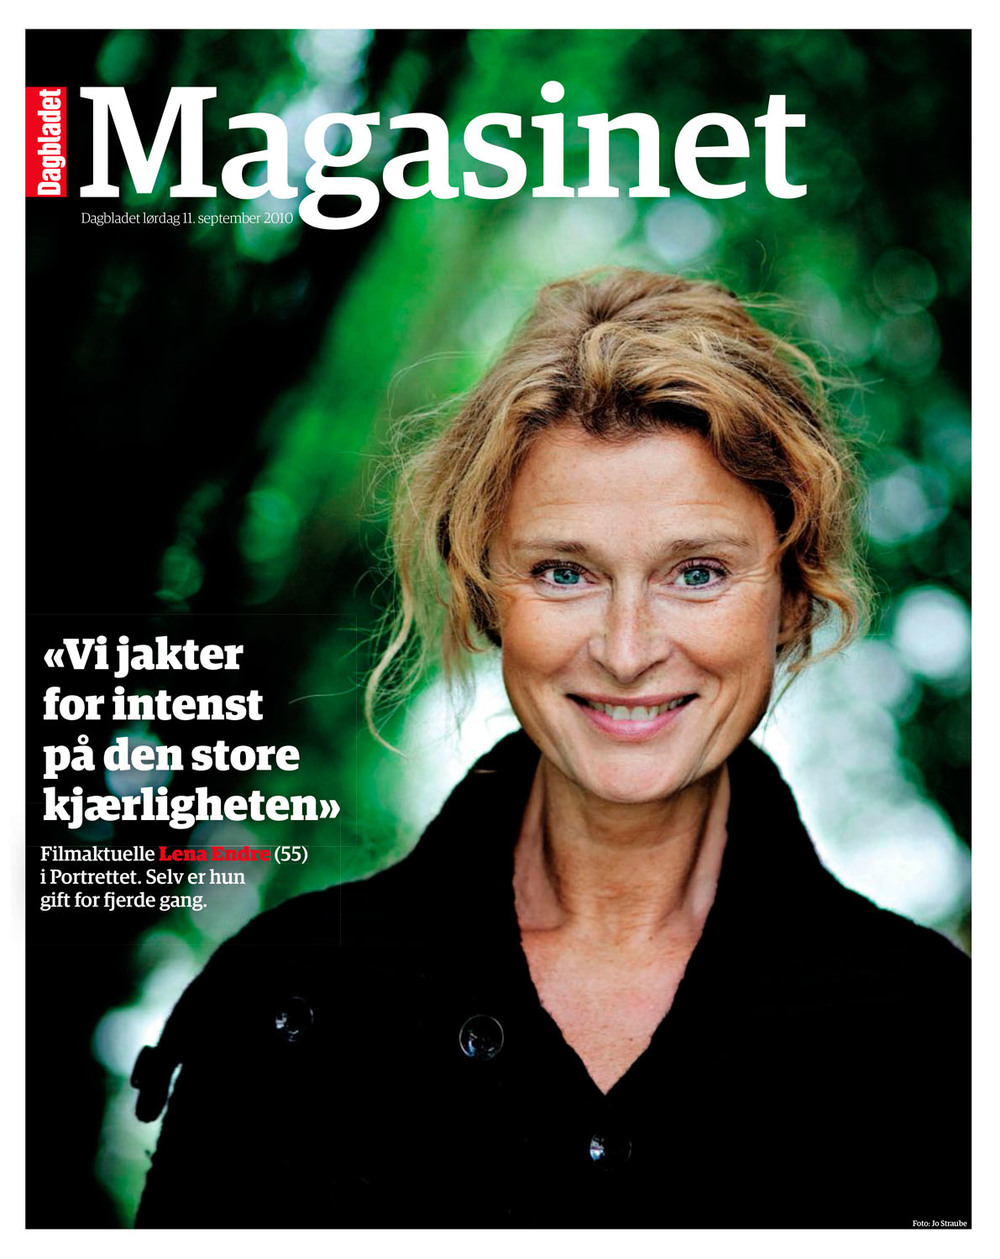 Dagbladet Magasinet 11.9.2010